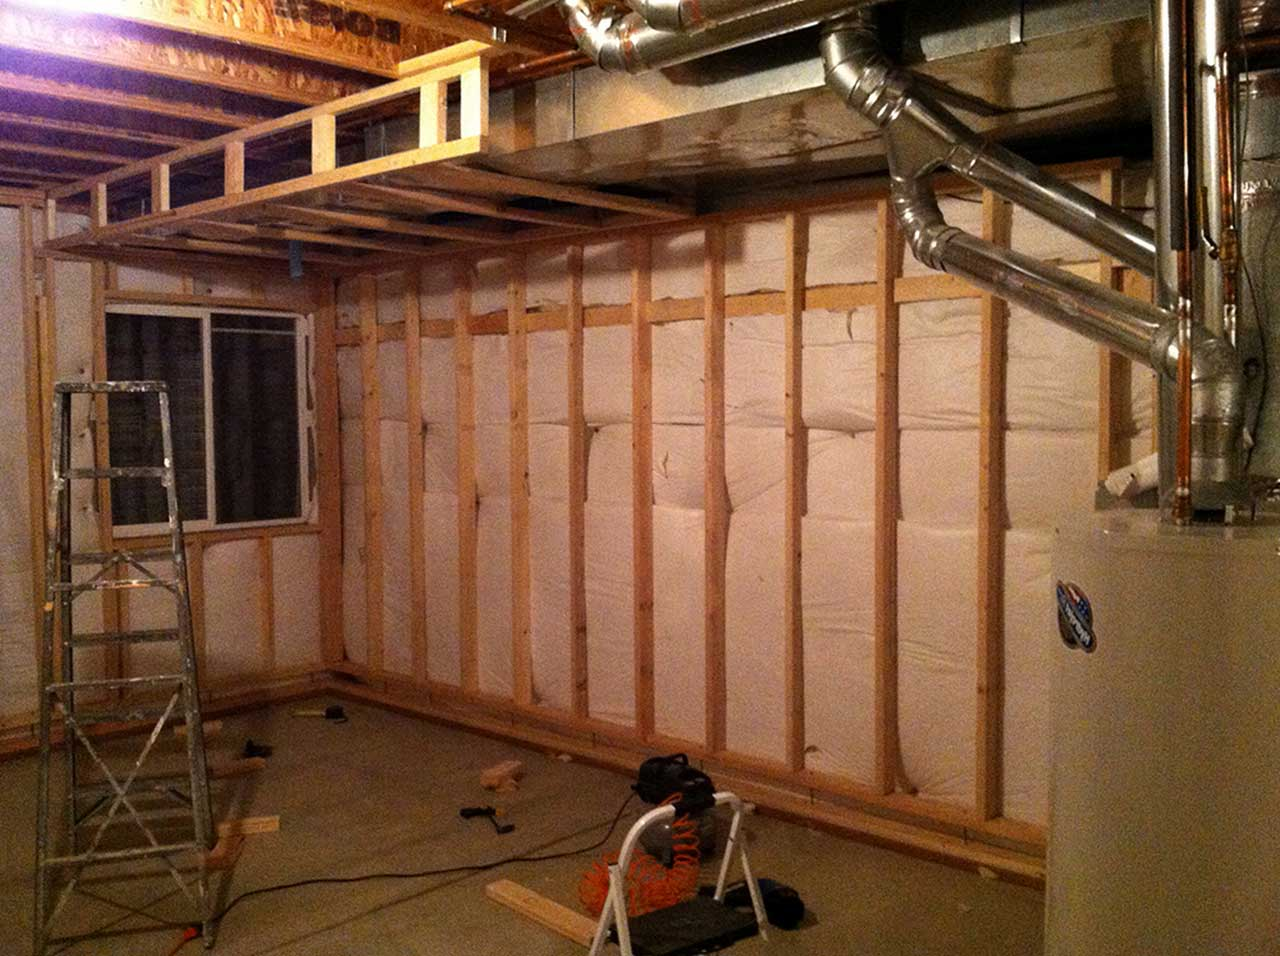 Construction And Building Materials For Home Renovations That You Should Know | Raysa House